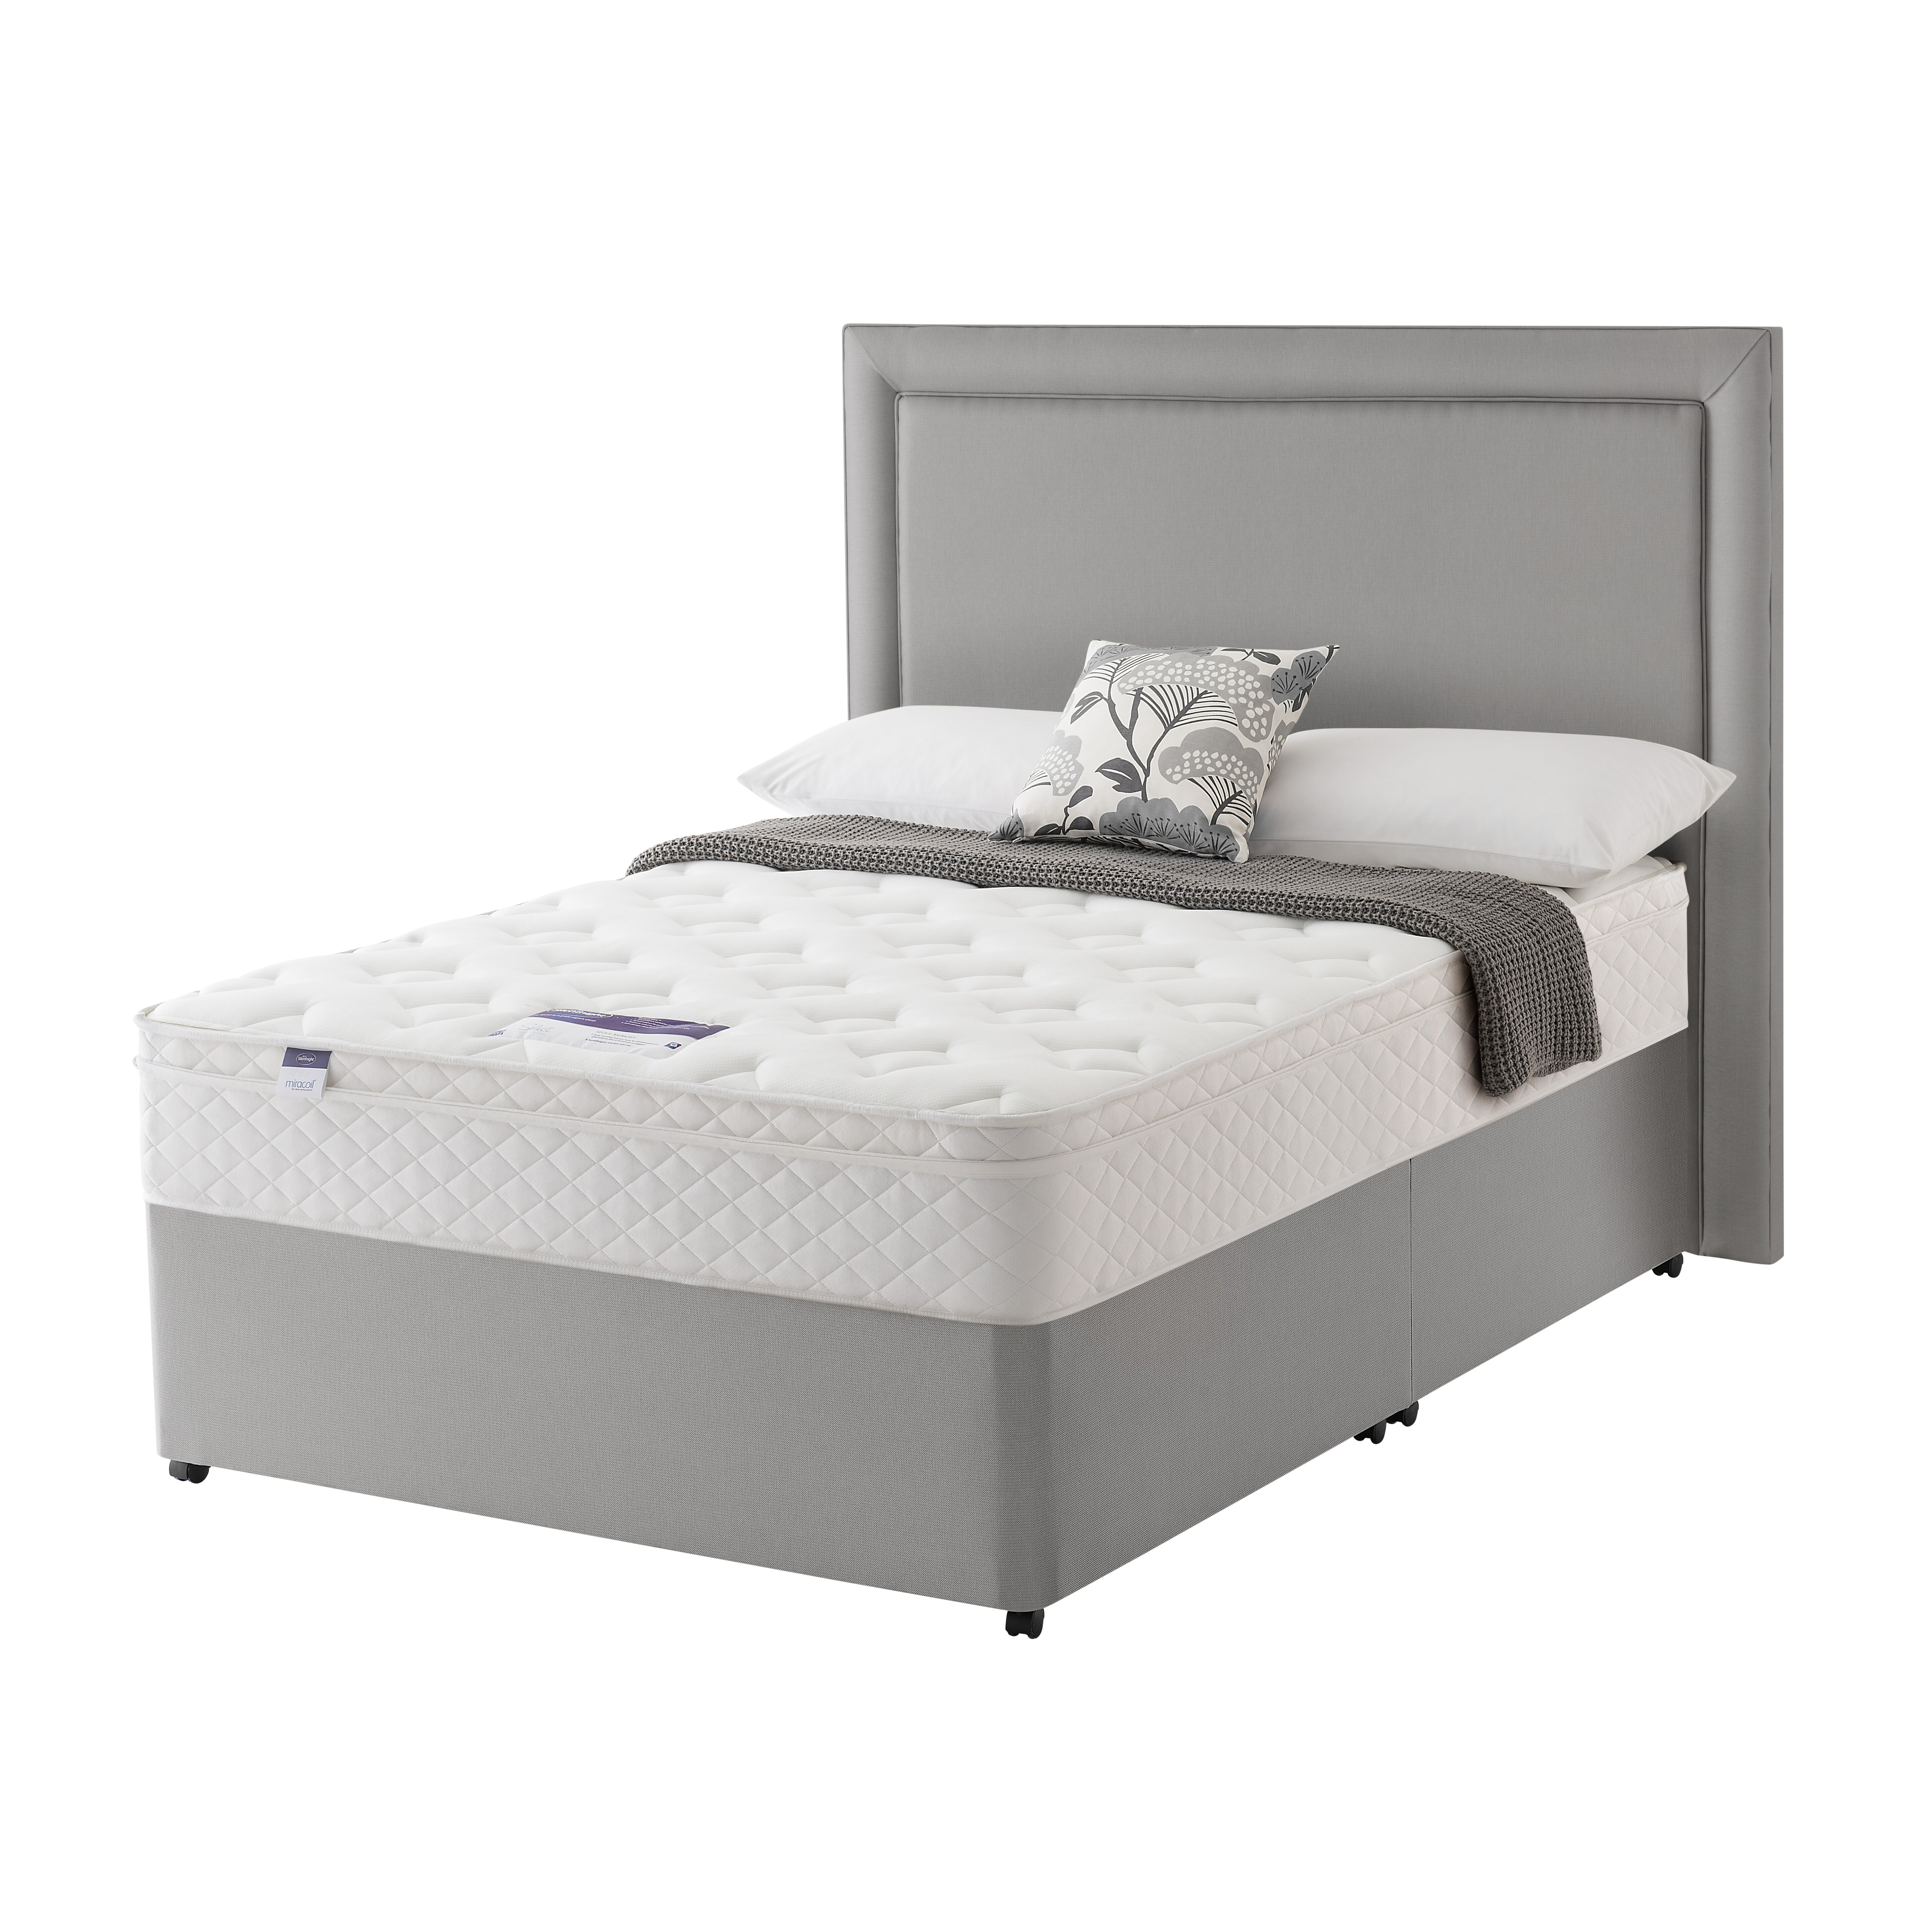 Silentnight Scarlet Memory Foam Divan Bed Wayfair Uk